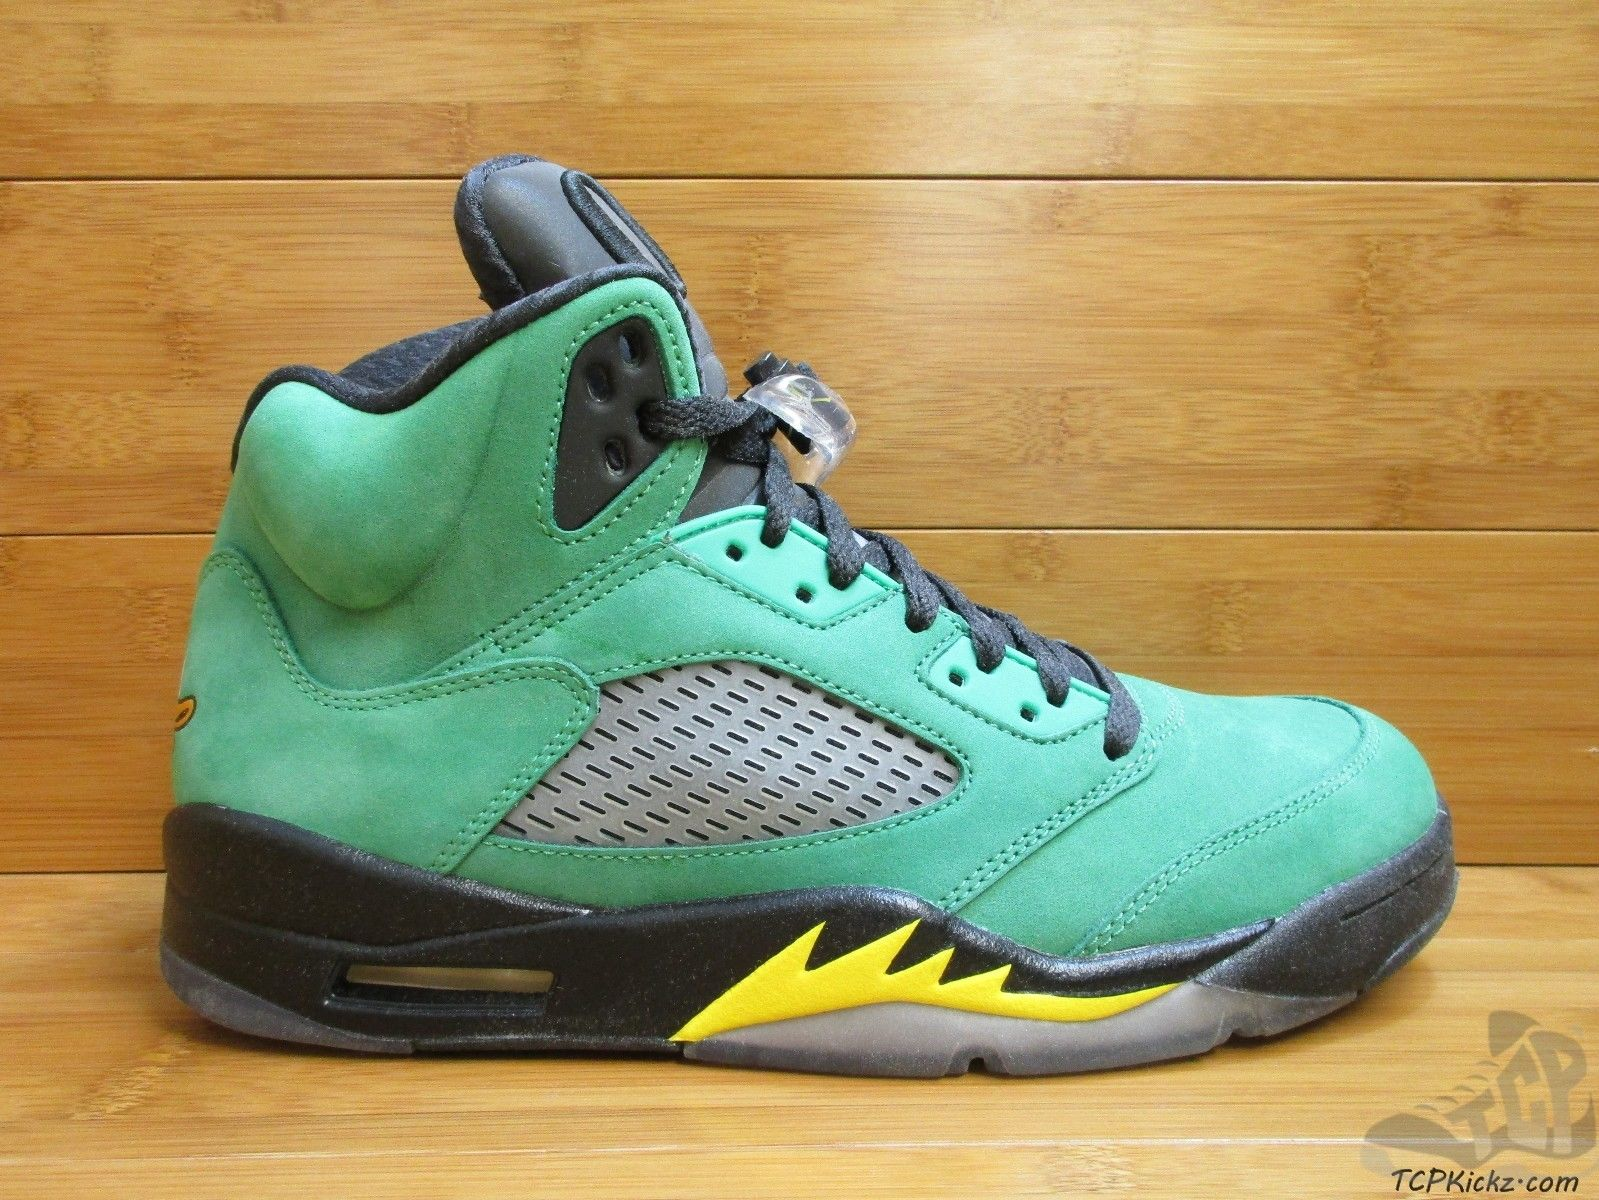 474874aee86ad6 The 23 Most Rare and Expensive Air Jordans on eBay Right Now